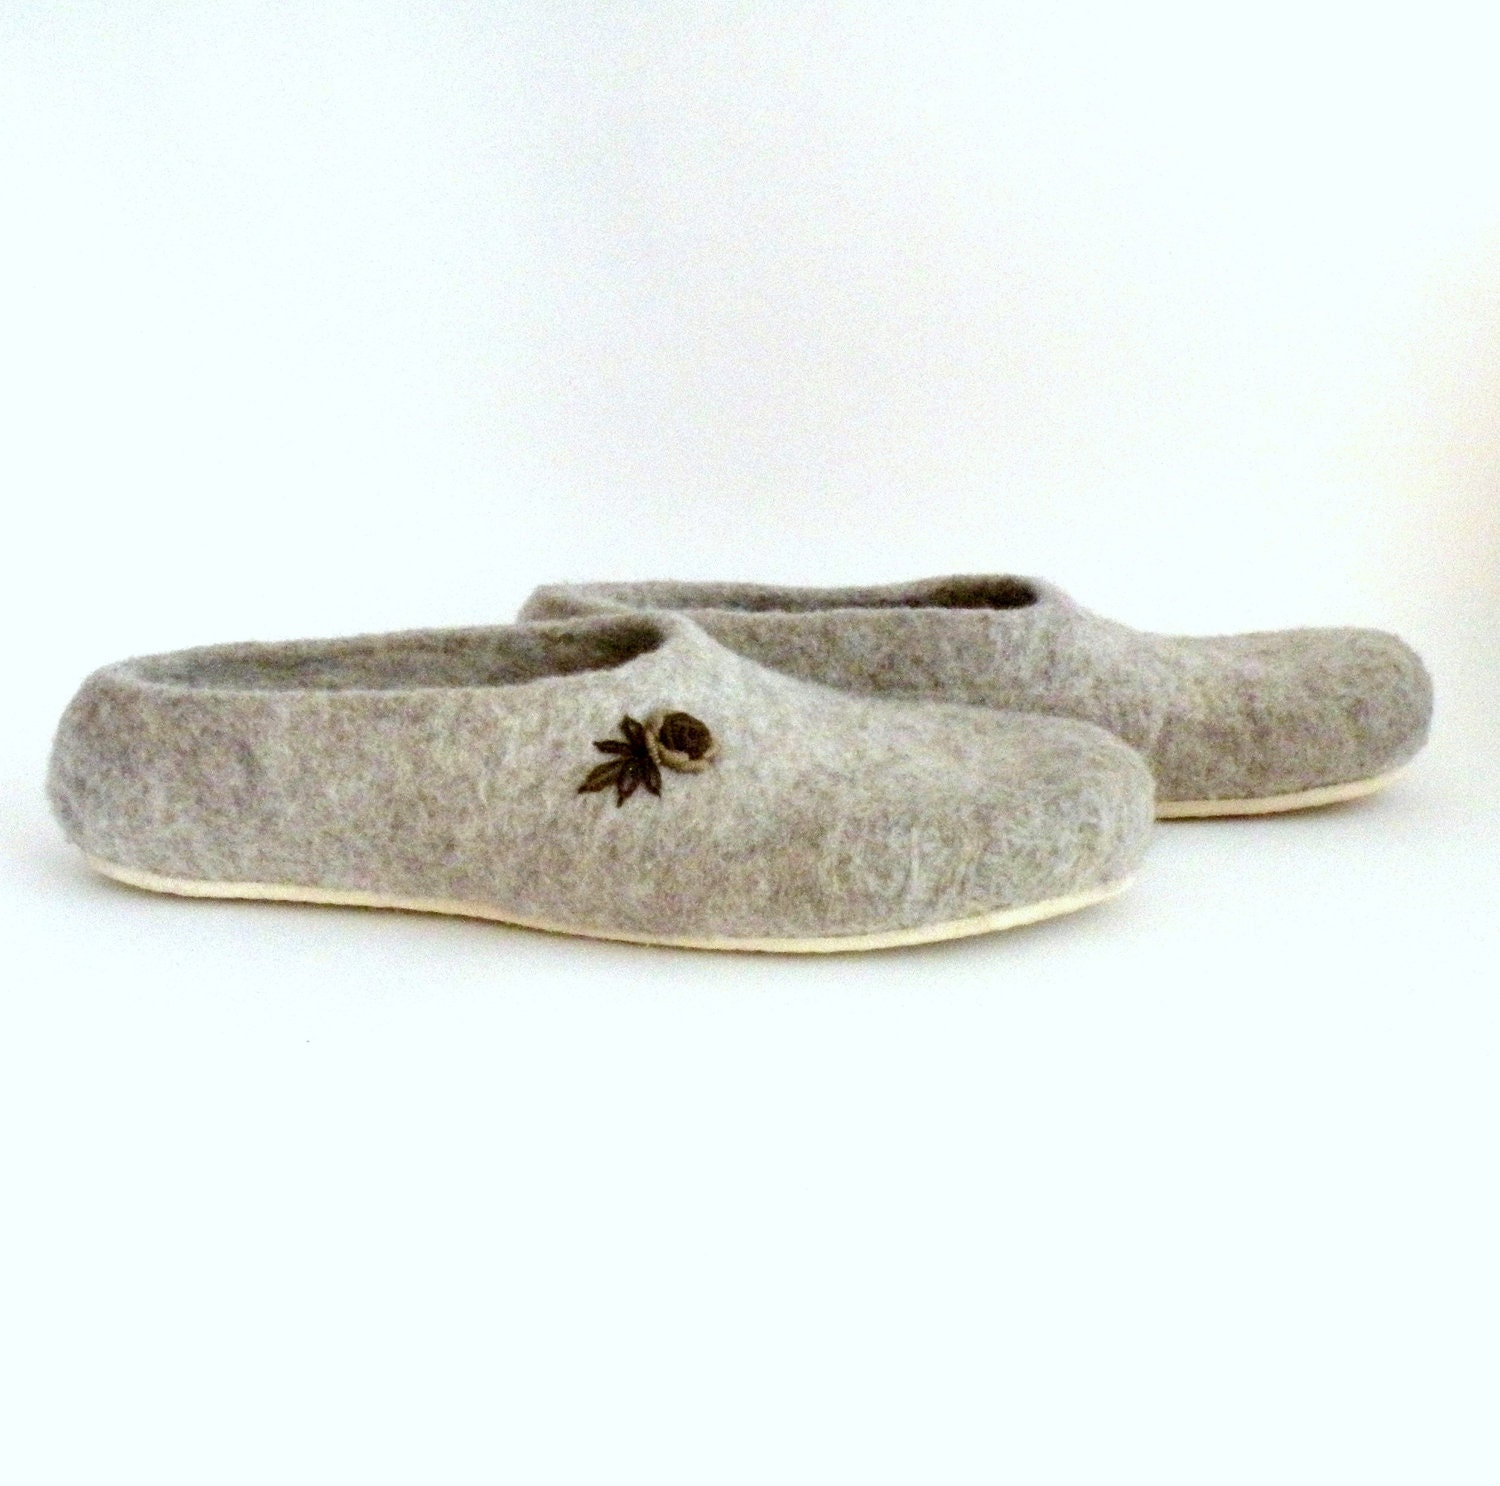 Felted slippers Neutral - natural beige with brown roses - made to order - eco mothers day - eco friendly - AgnesFelt